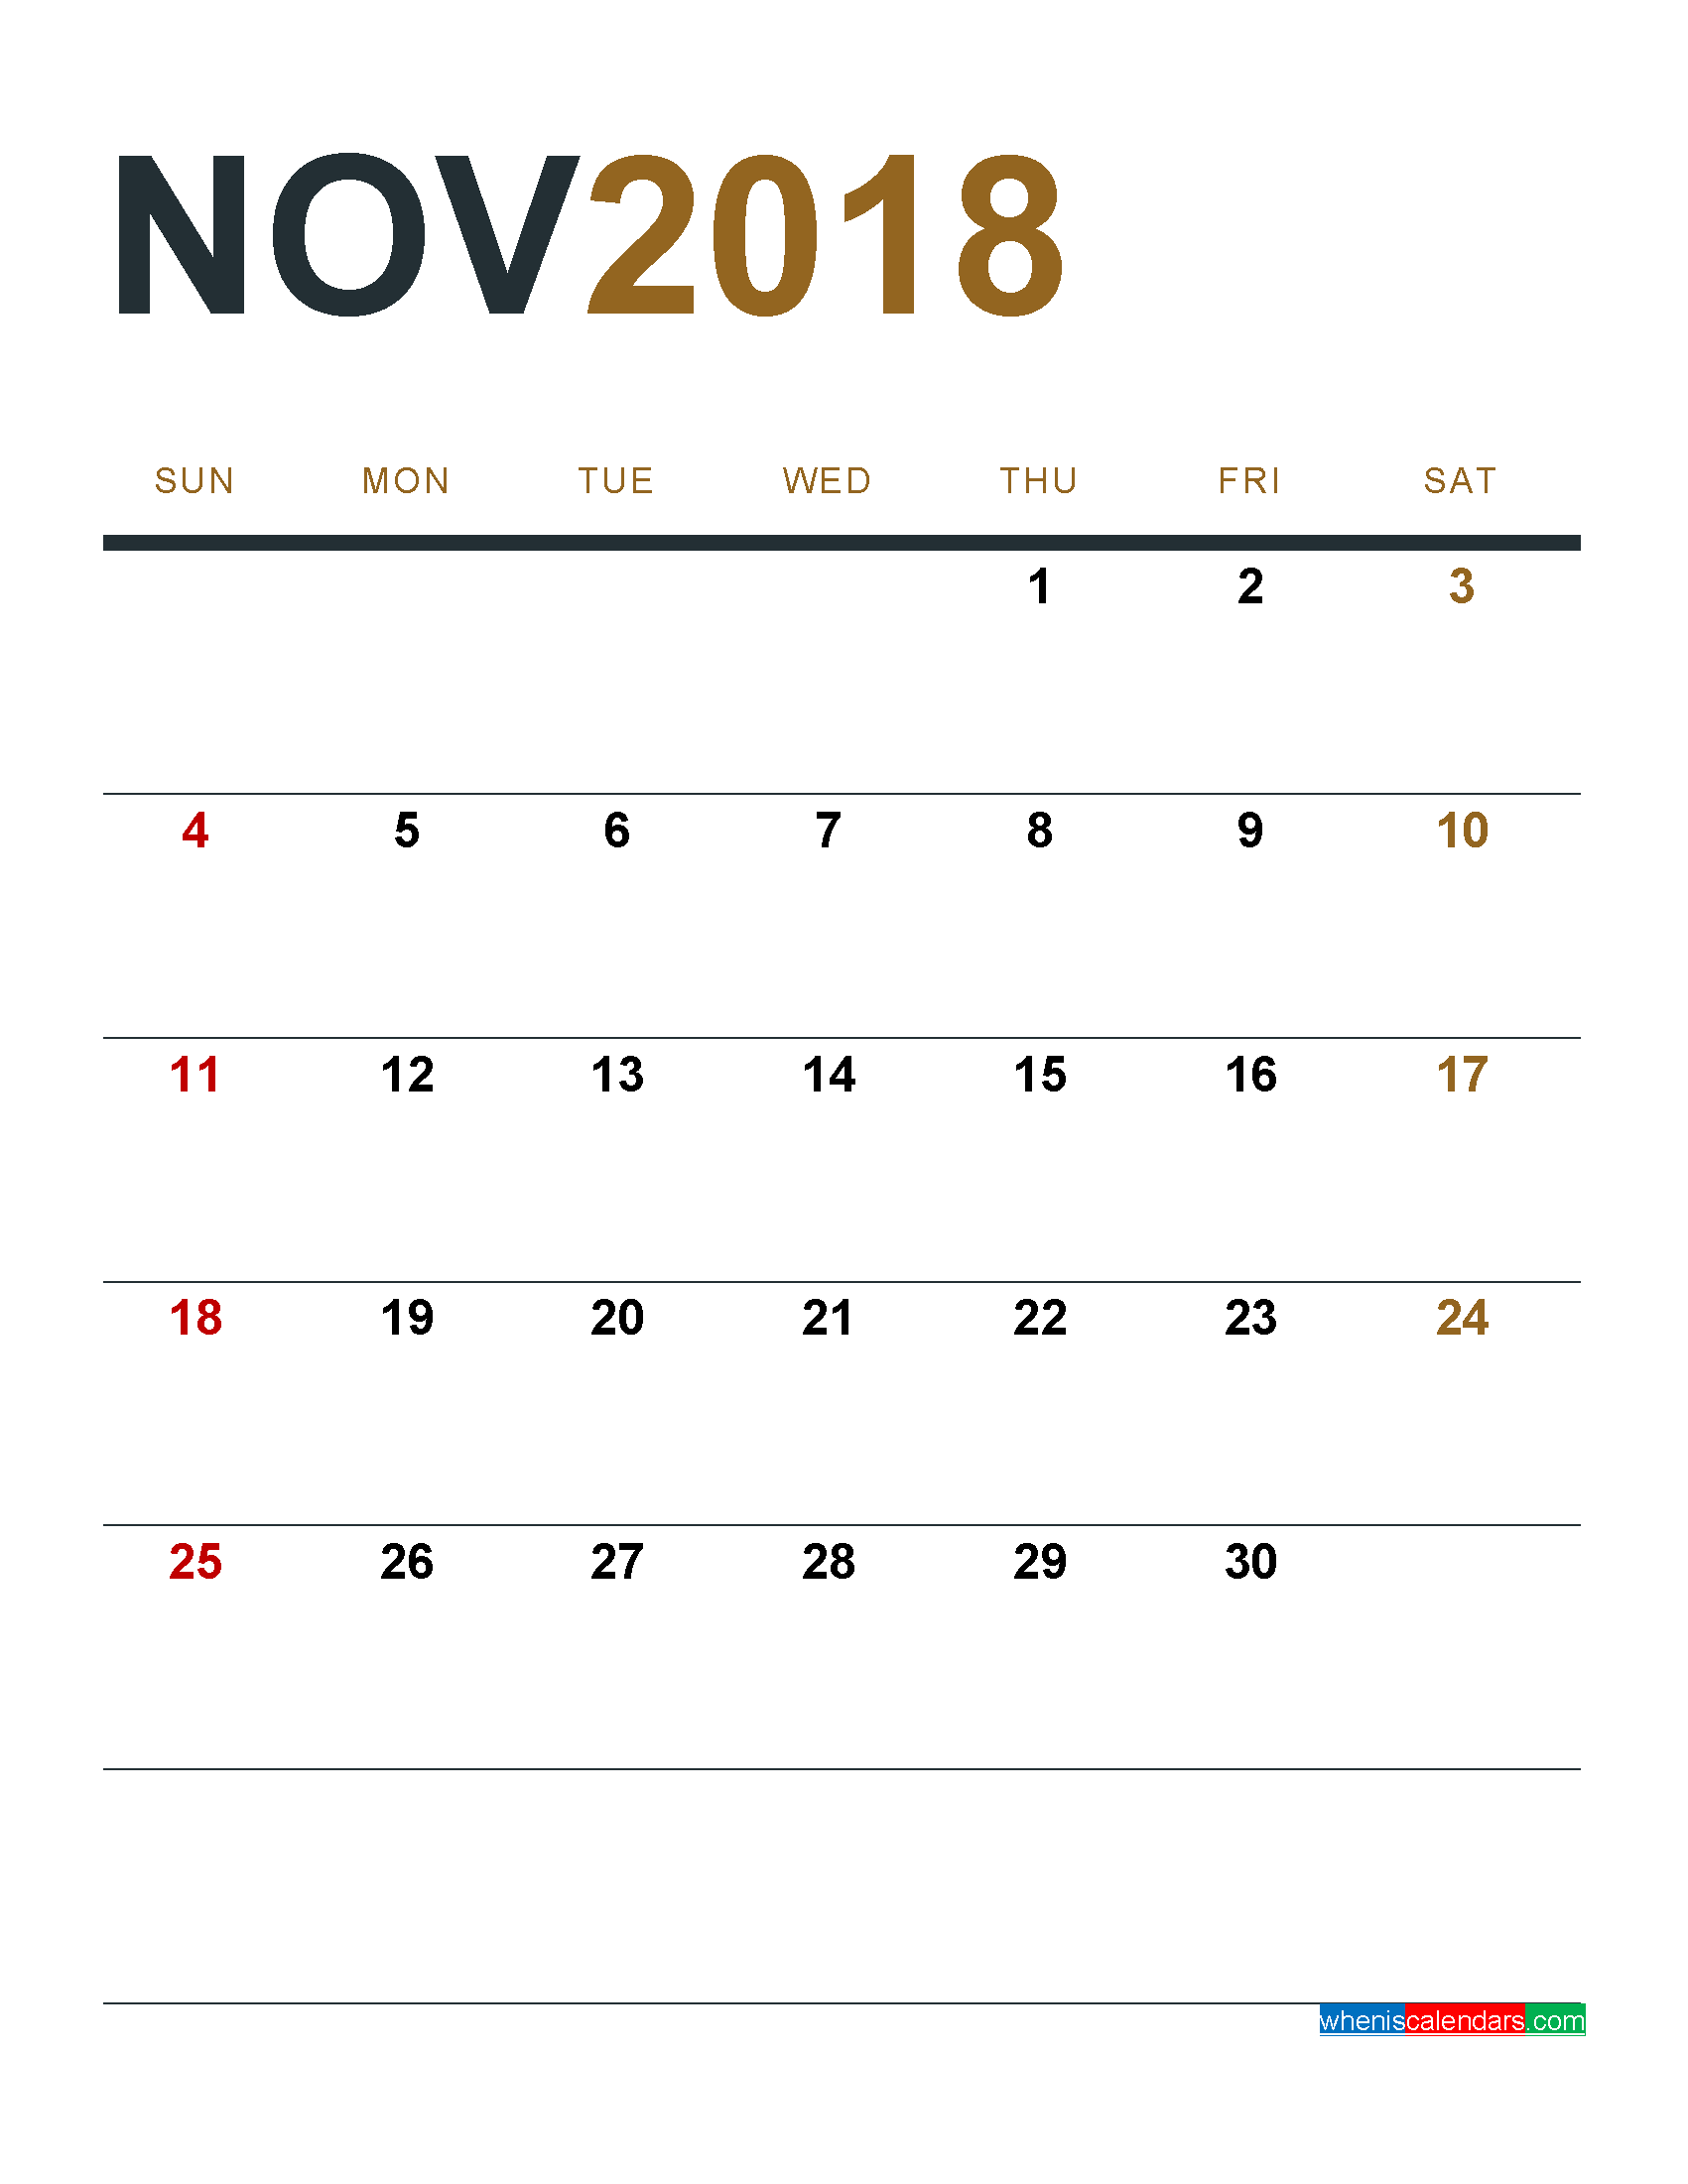 November 2018 Calendar Printable As Pdf And Image 1 Month